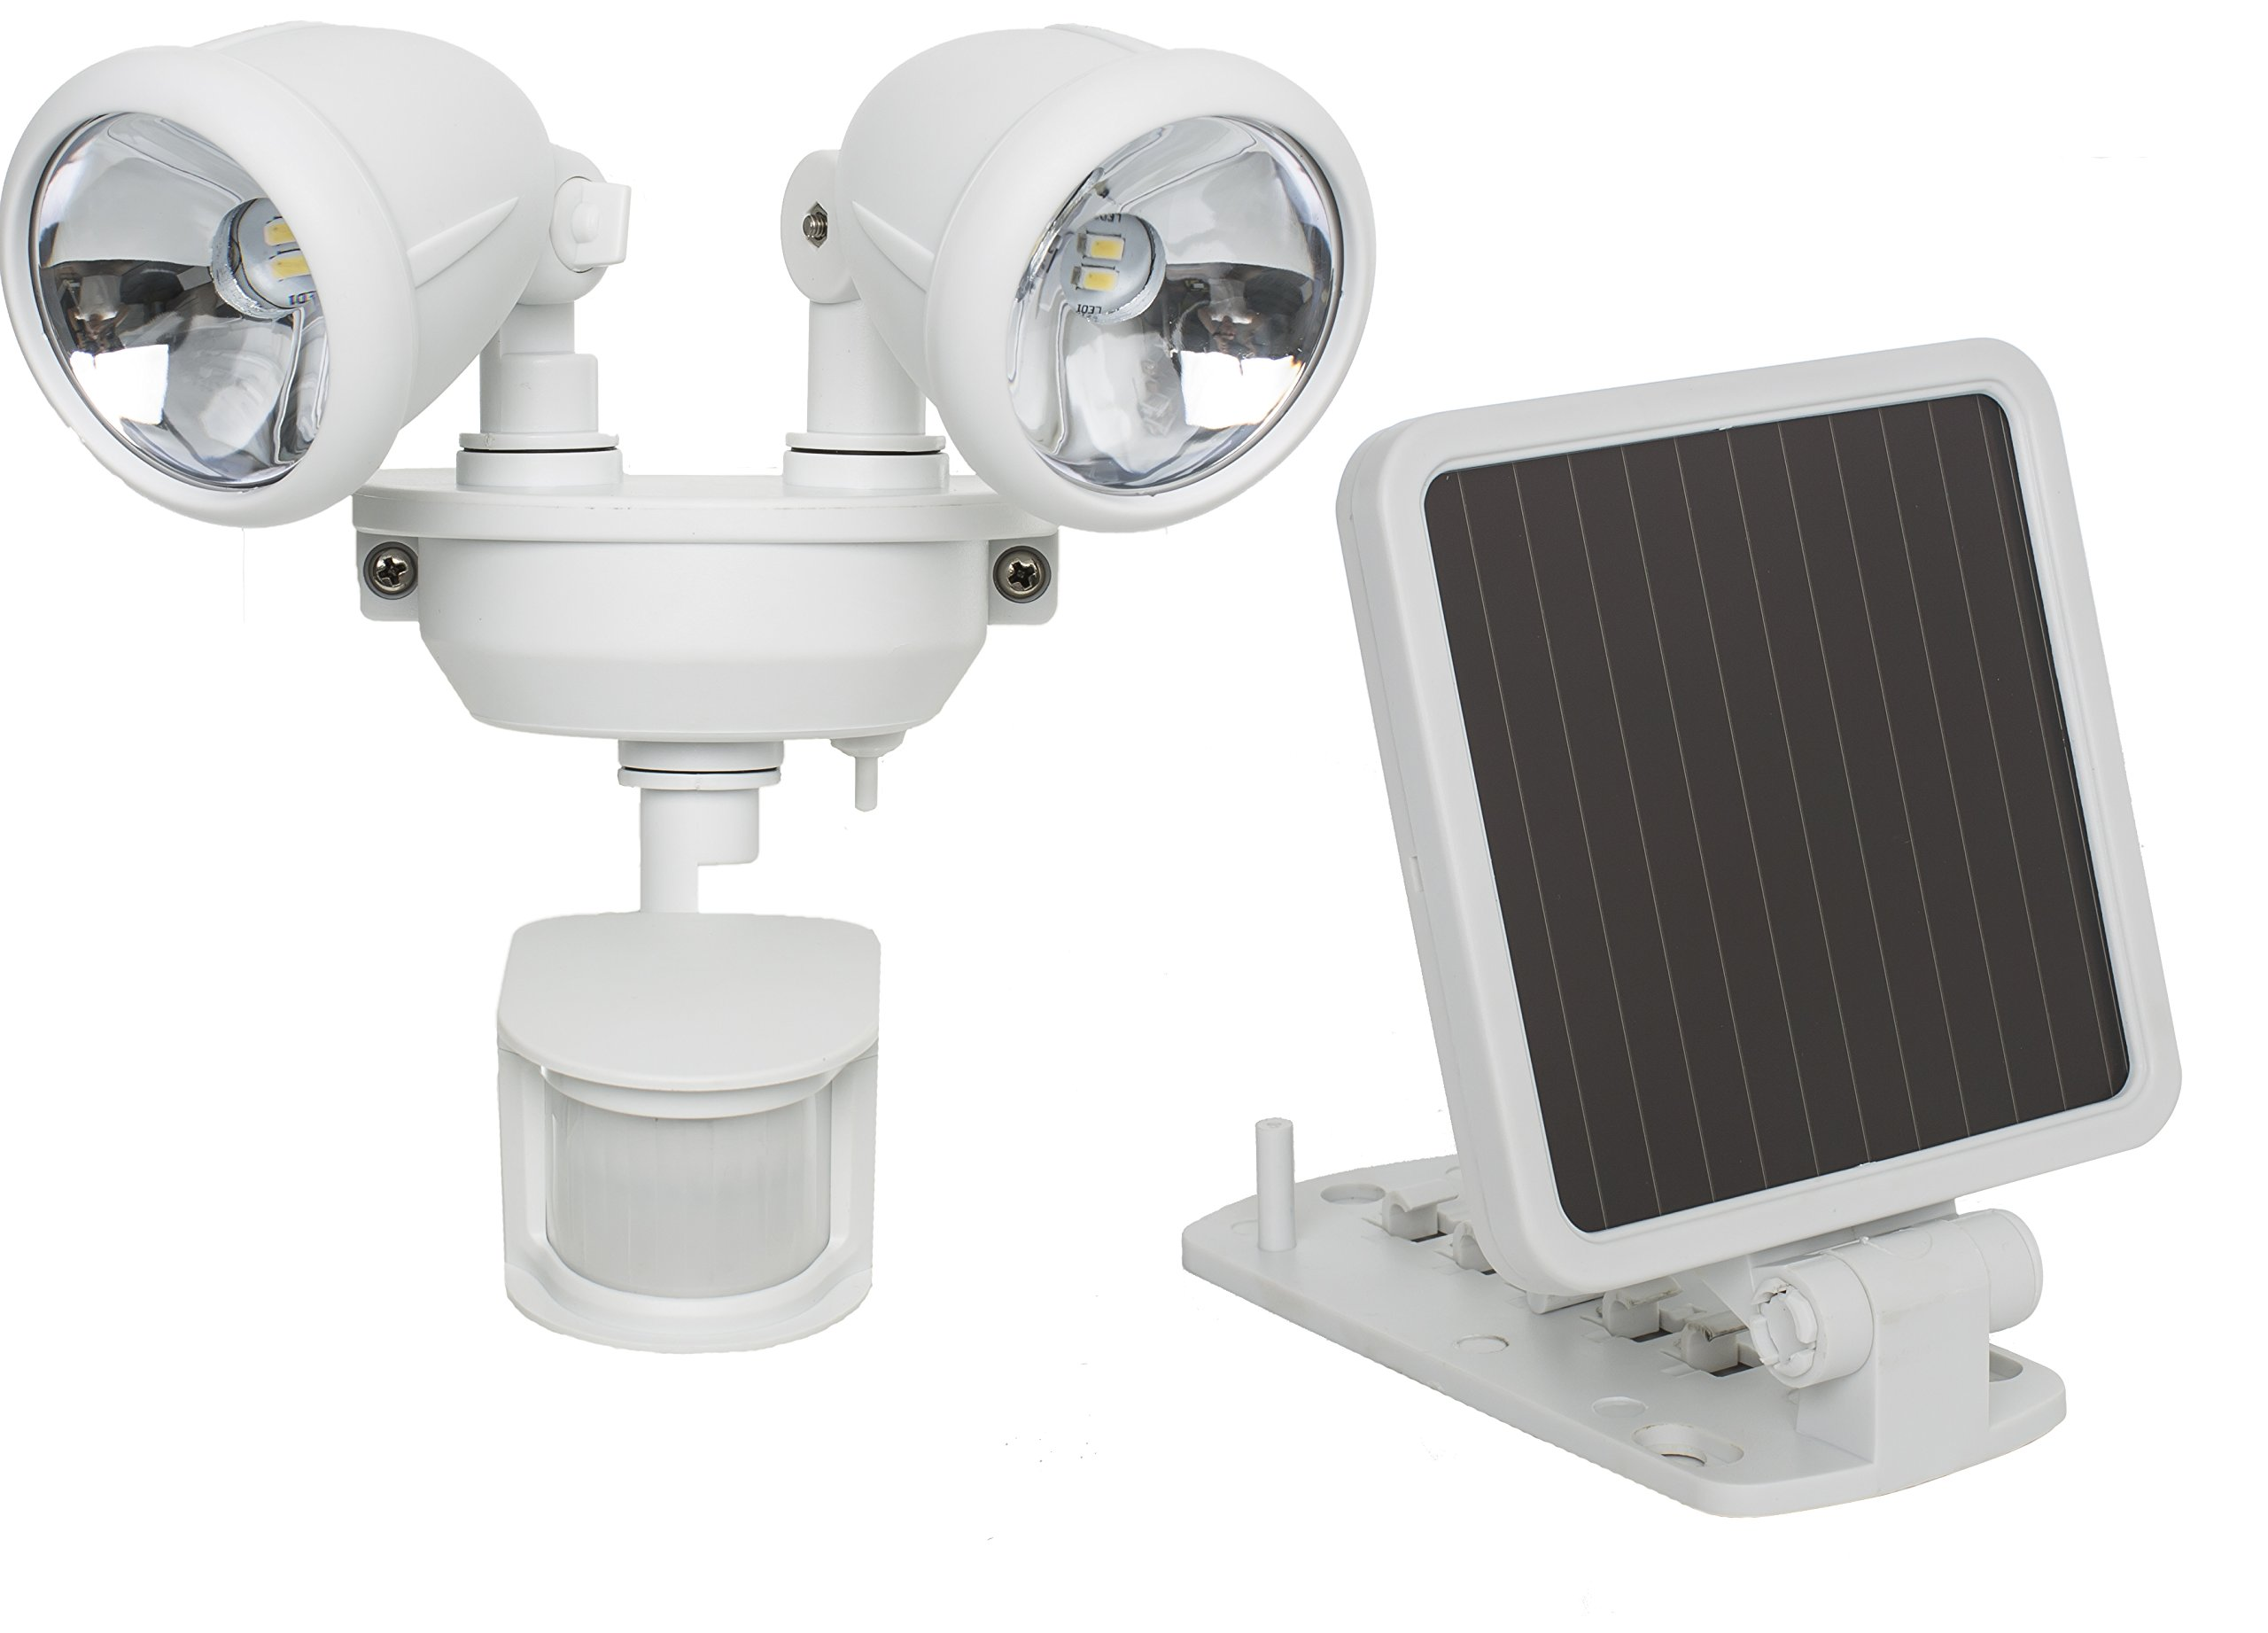 MAXSA Solar-Powered, Motion-Activated Dual Head Security Spotlights for lighting up Outdoor Spaces, White 44217